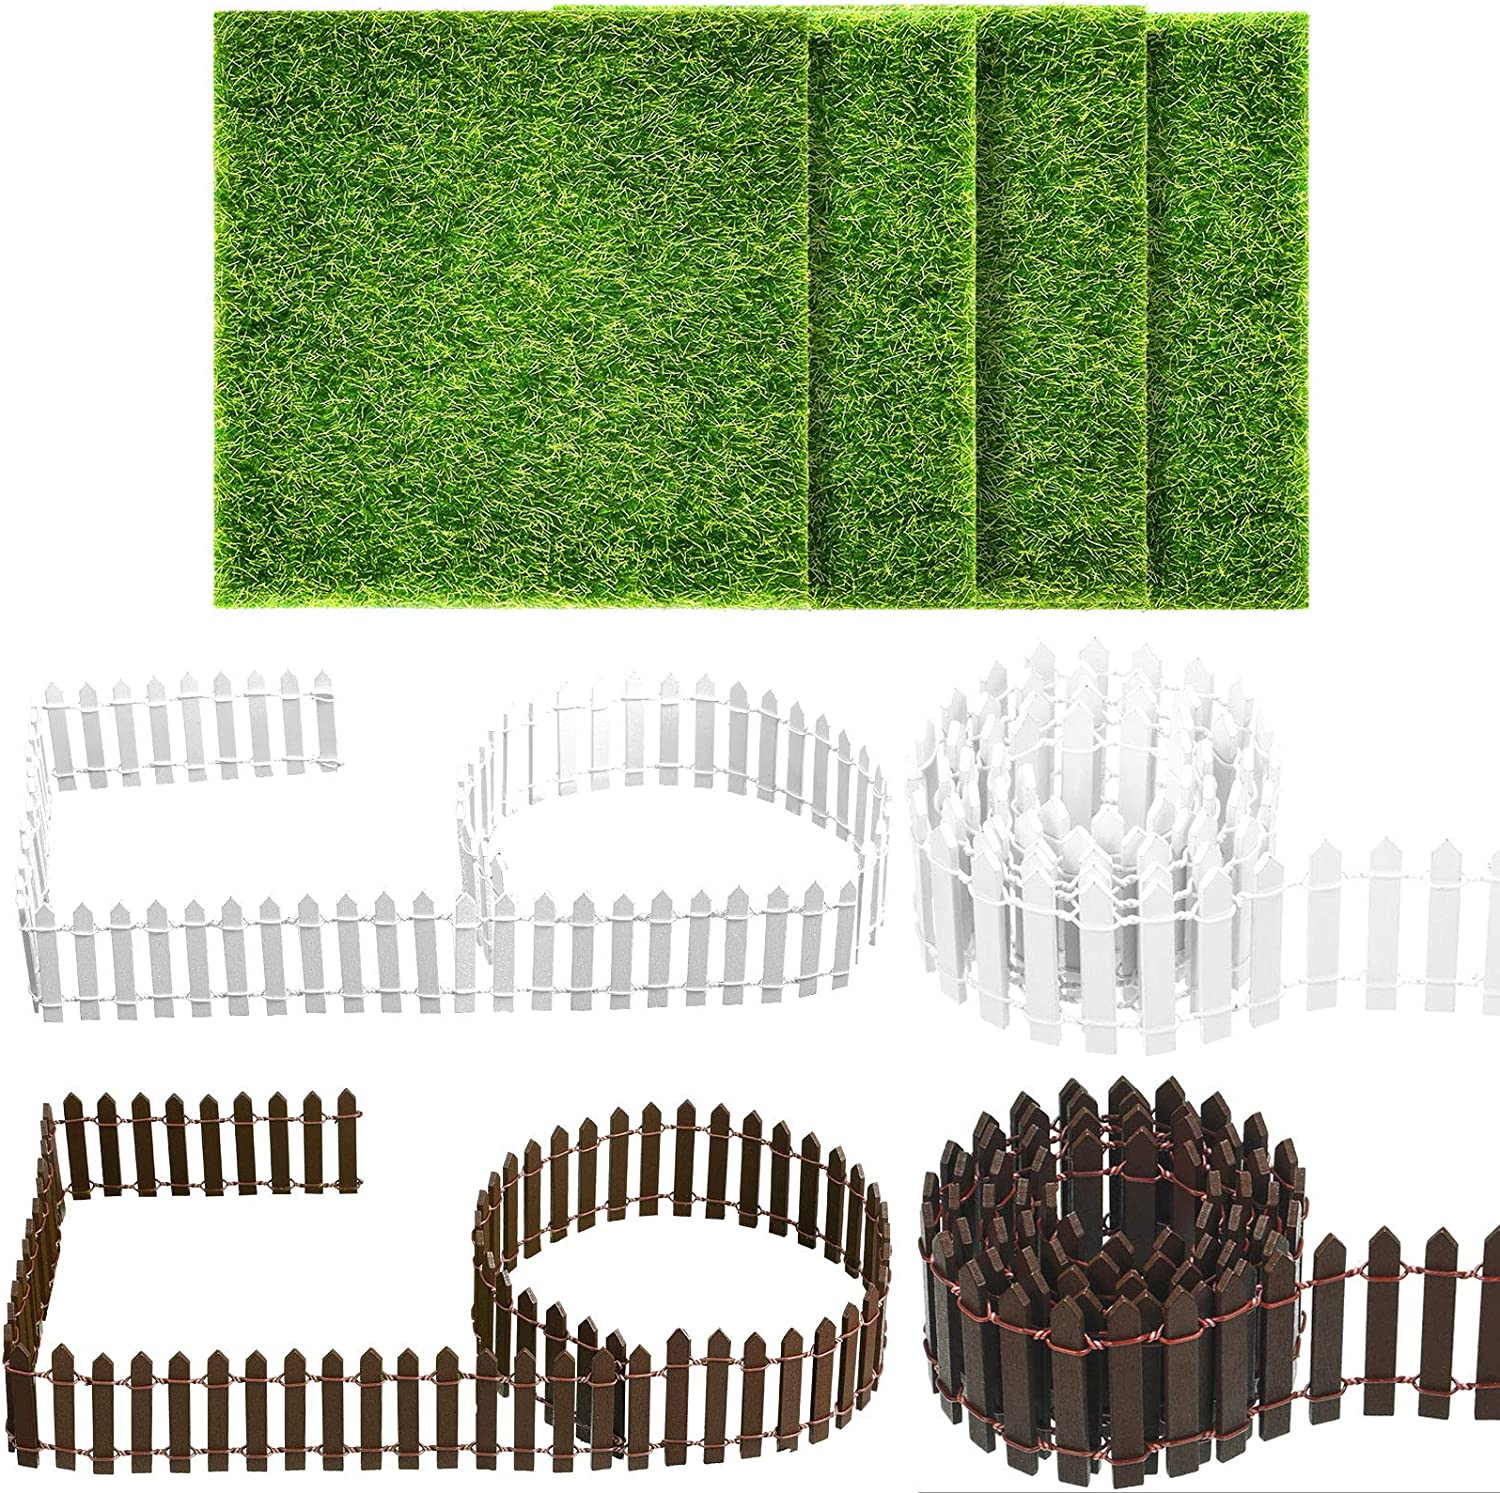 4 Pieces 35 Inch Miniature Fairy Garden Ornament Fence Brown and White Decorative Fence and 4 Pieces 6 x 6 Inch Artificial Garden Grass for Home Garden Plant Pot DIY Project